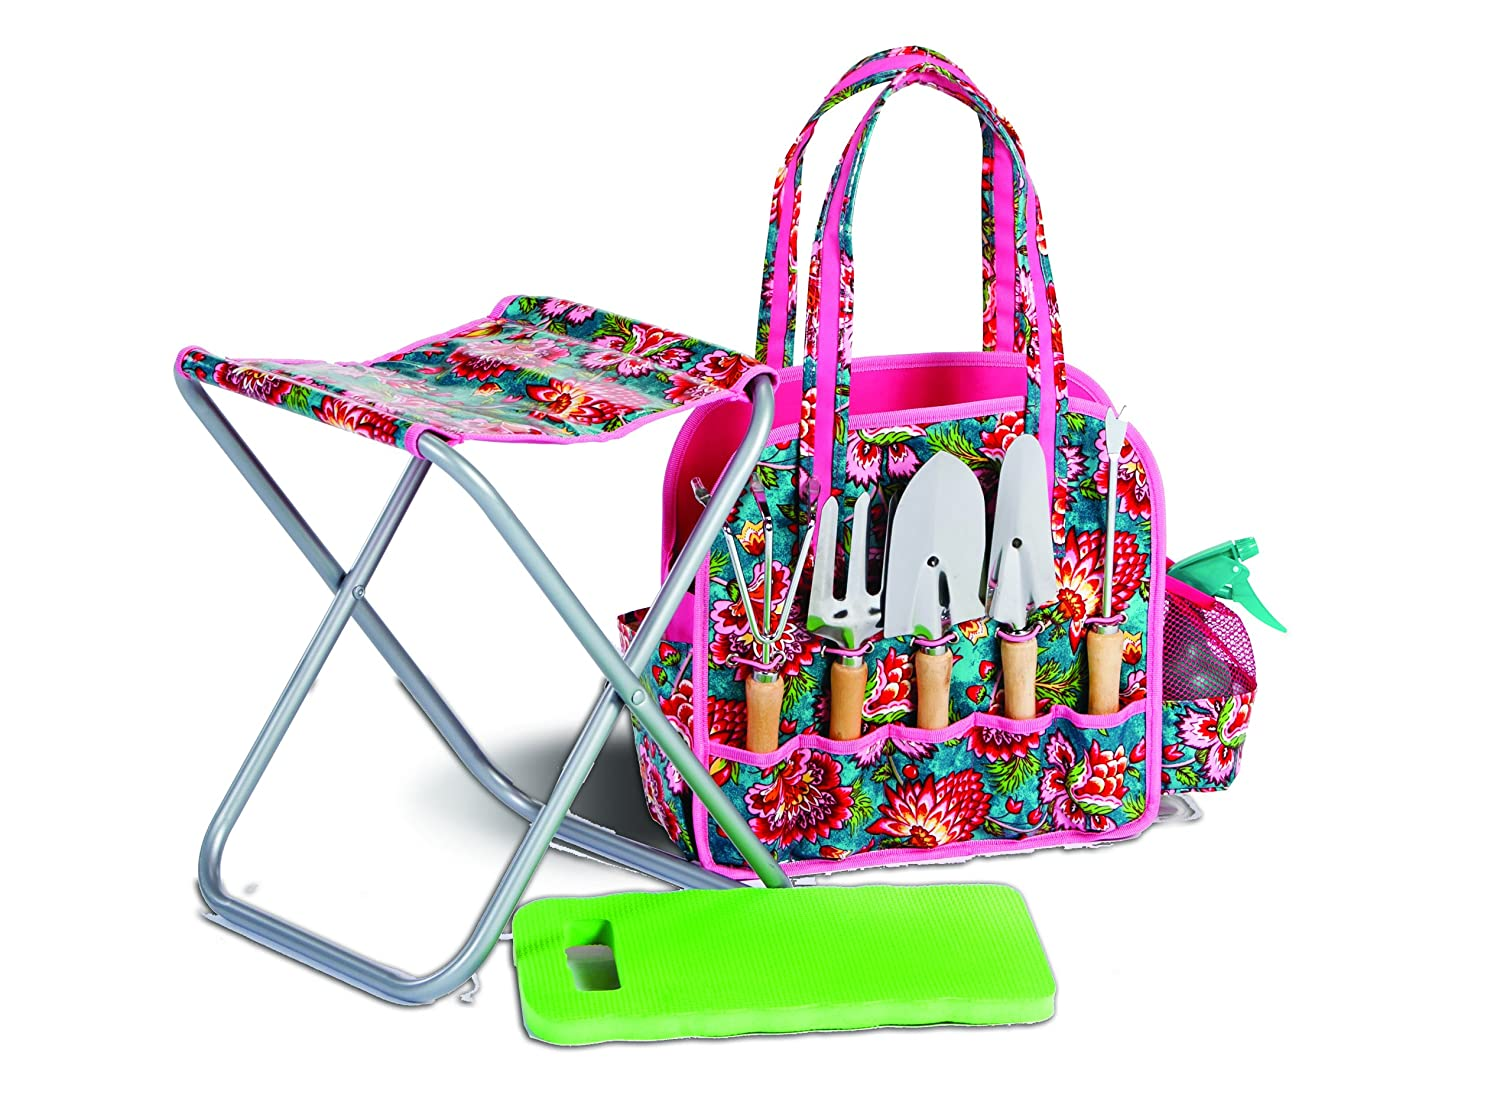 9 Piece Deluxe Garden Tote with Stool, Kneeling Pad and 5 Garden Tools April Cornell Madeline Turquoise Design by Picnic Plus